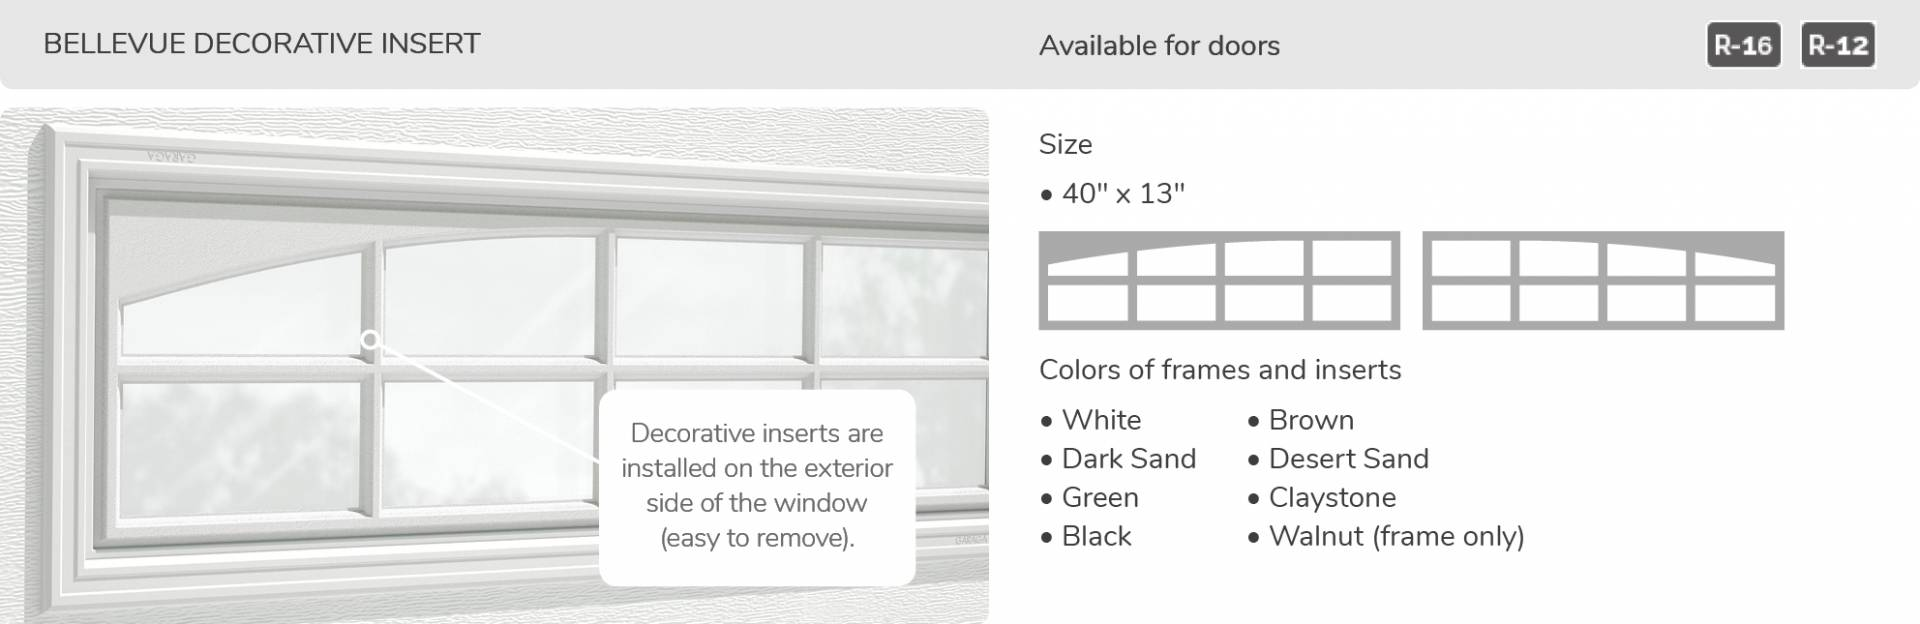 Bellevue Decorative Insert, 40' x 13', available for door R-16 and R-12